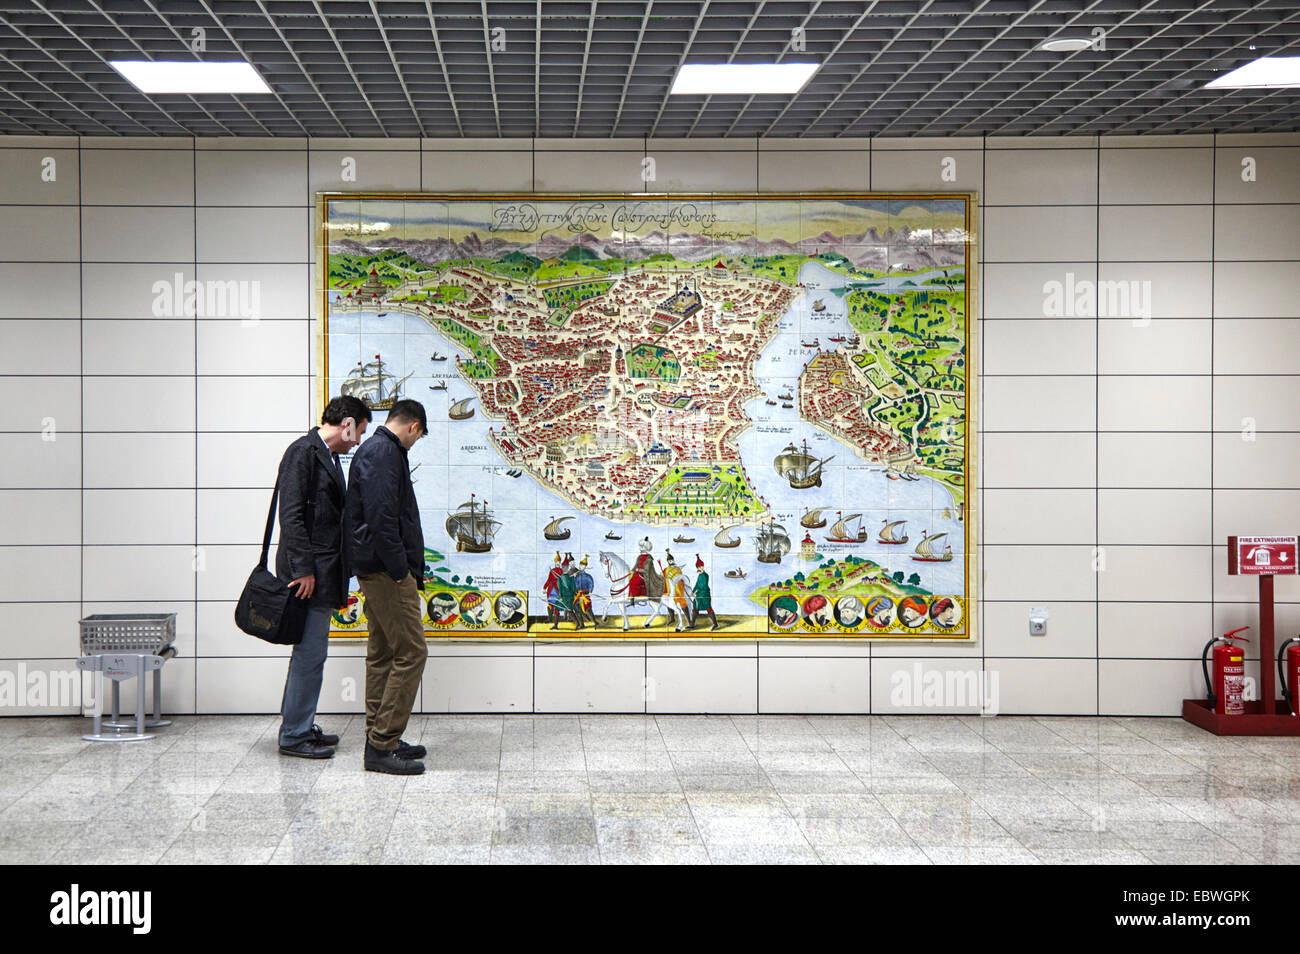 Istanbul metro public rail transport under the Bosphorus strait with map showing city - Stock Image